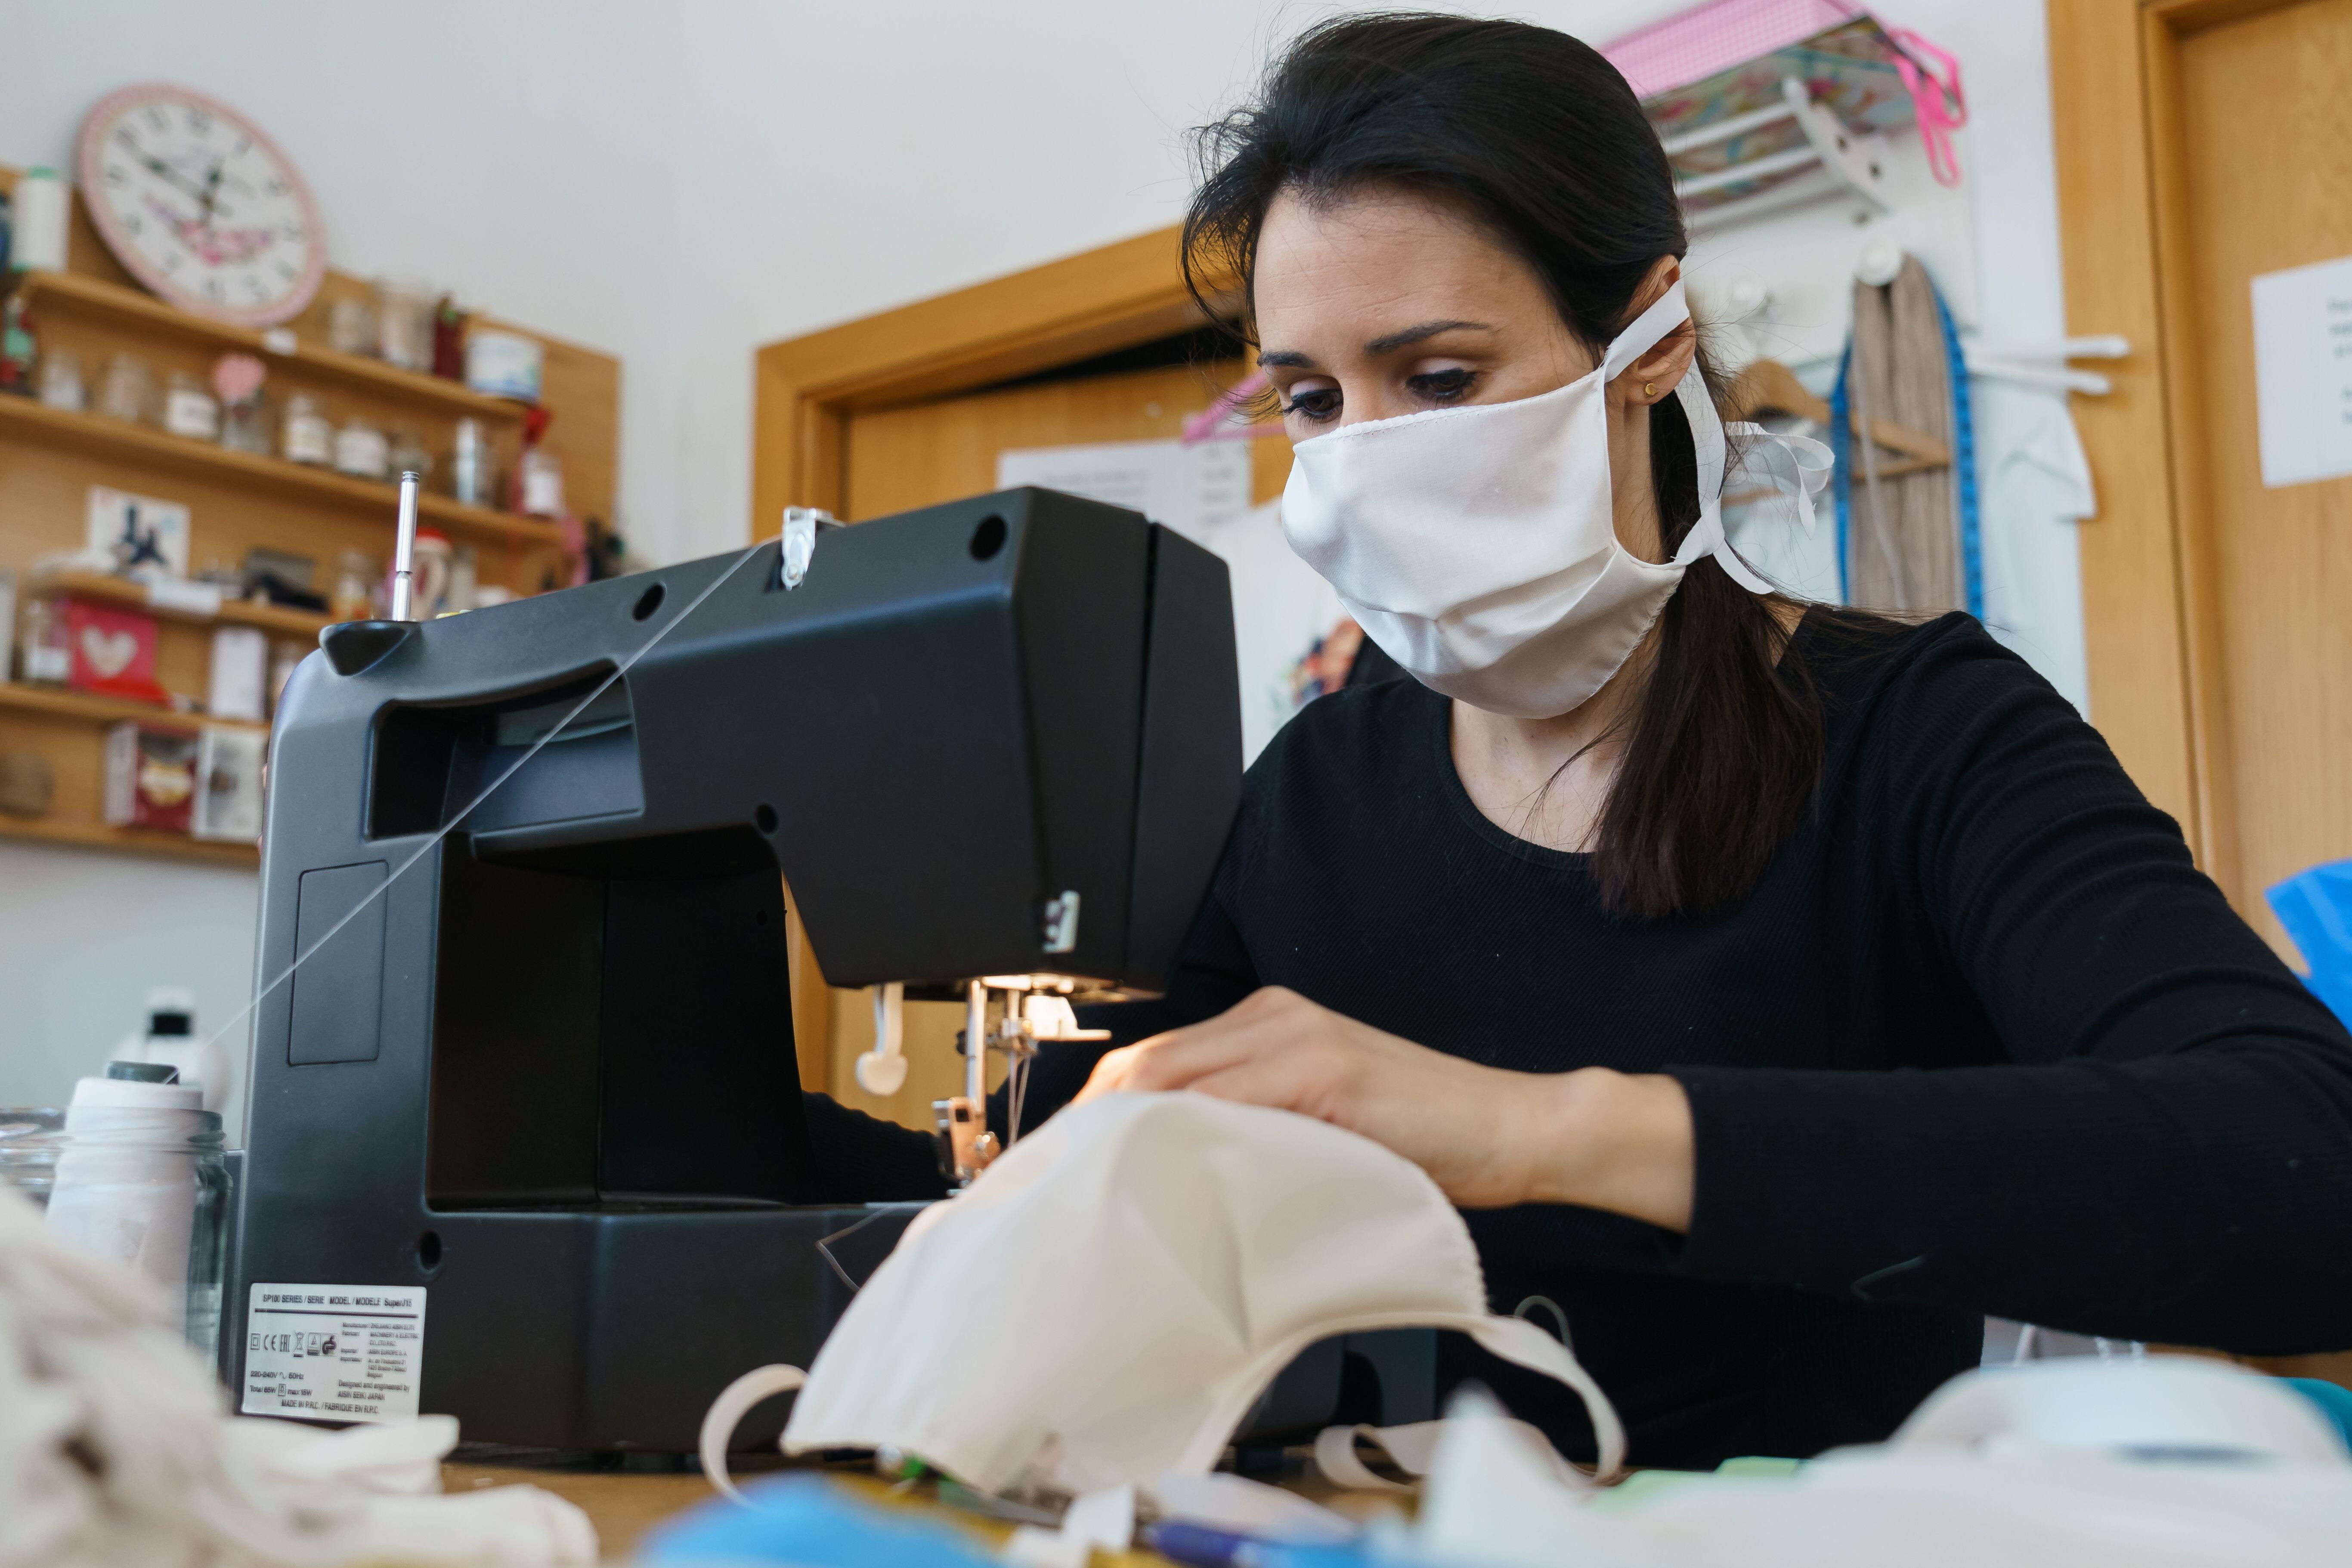 A woman sewing handmade face masks in Spain last month. The US Centers for Disease Control and Prevention now recommends that people in the states wear nonmedical, cloth face masks when they leave home. But medical-grade masks, like N95 respirators, shoul